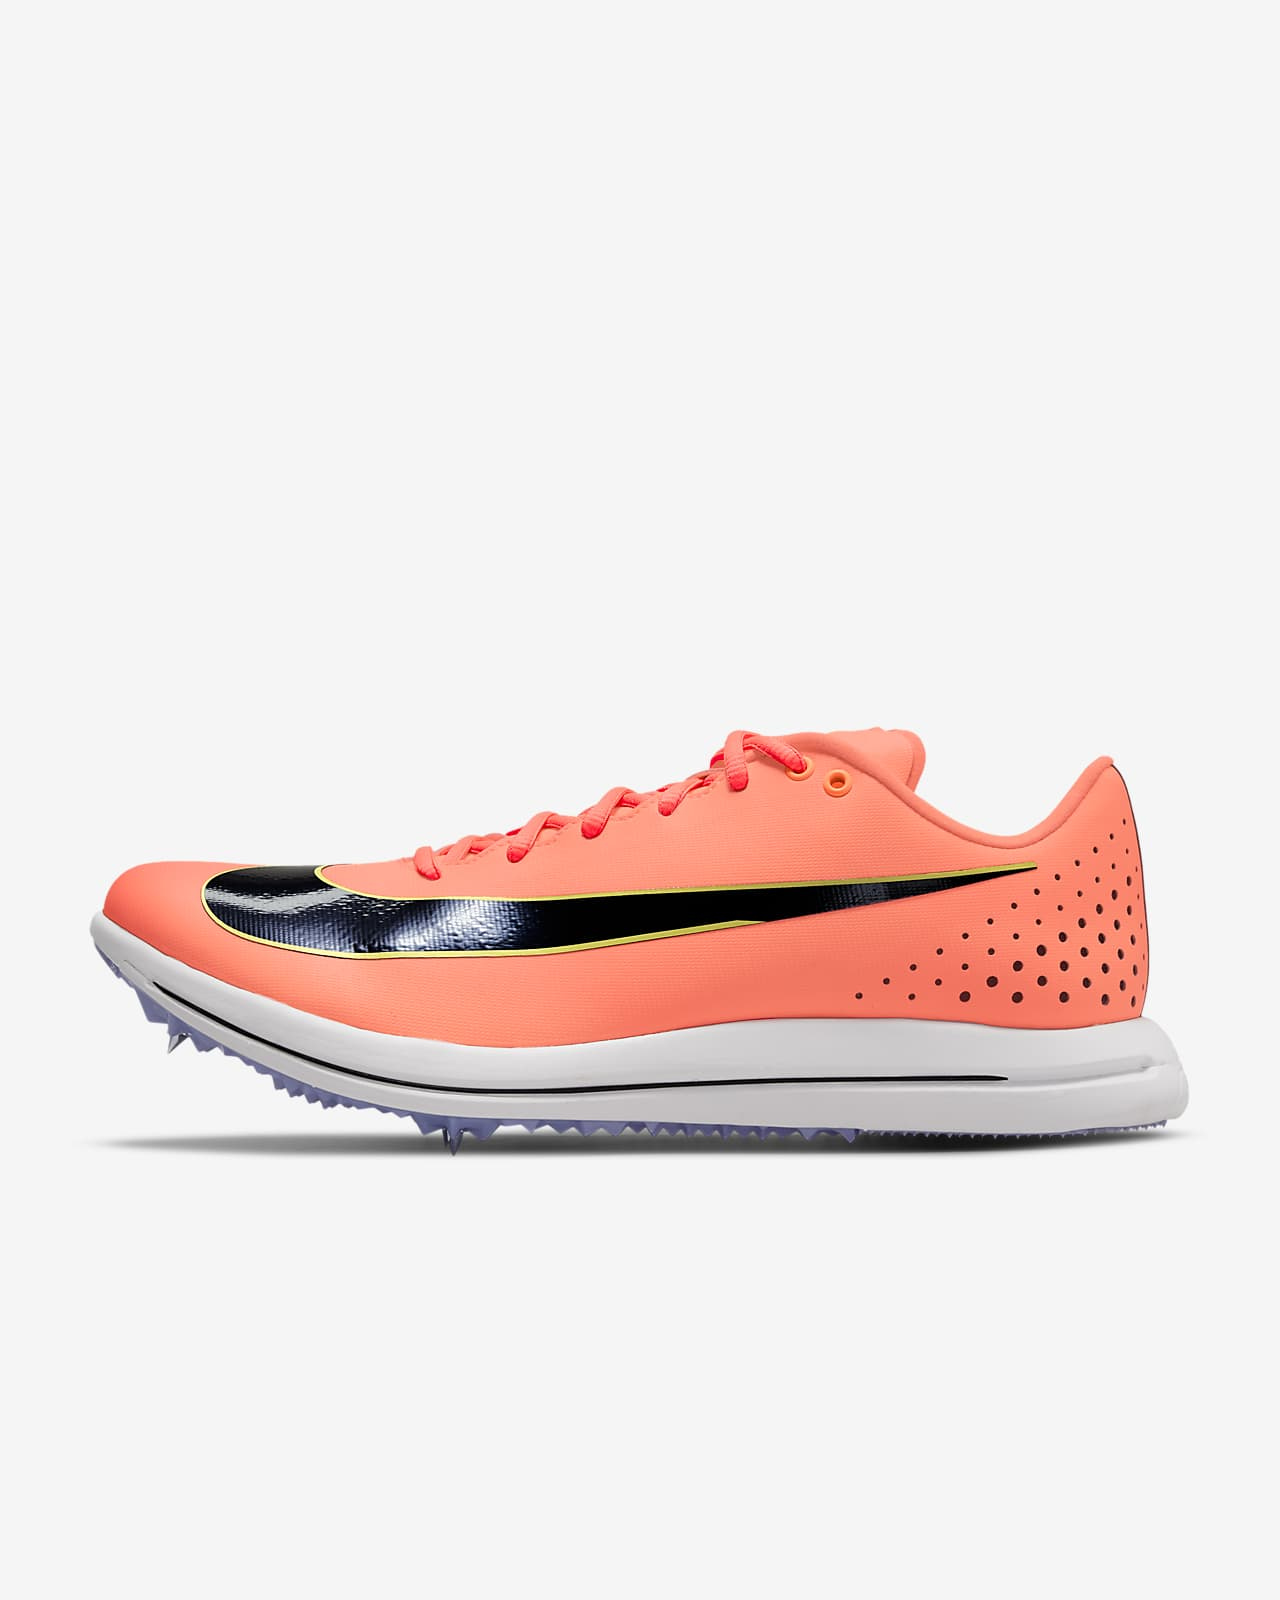 Nike Triple Jump Elite 2 Track Spikes